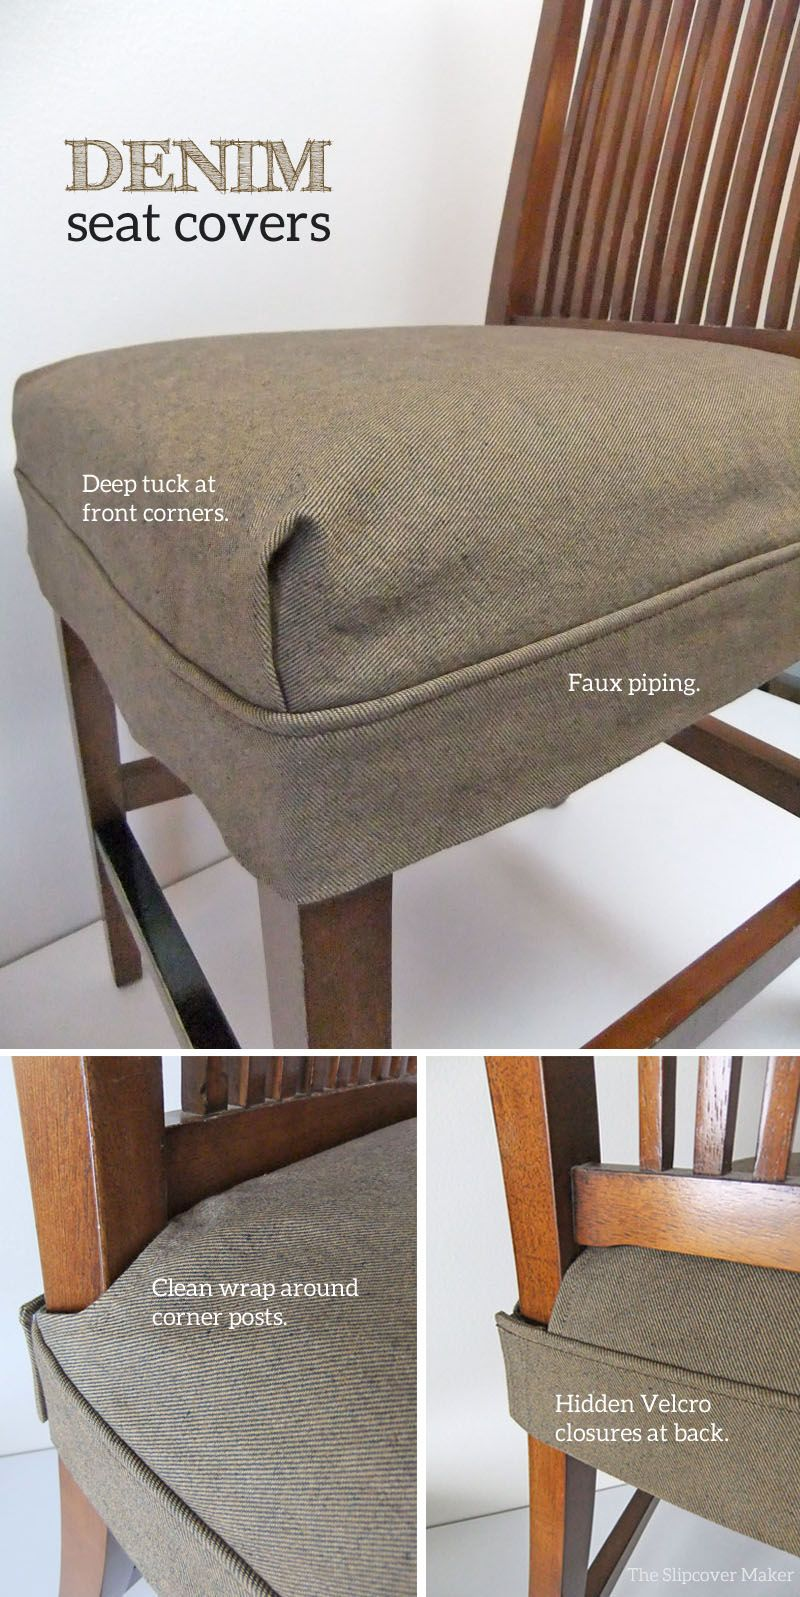 Kitchen Chair Seat Covers Cowhide Desk Tailored Denim Chairs Pinterest For Washable Dining Room Are A Smart Choice When Upholstery Becomes Stained And Worn Out Or Splits Peels Like Pam S Leather